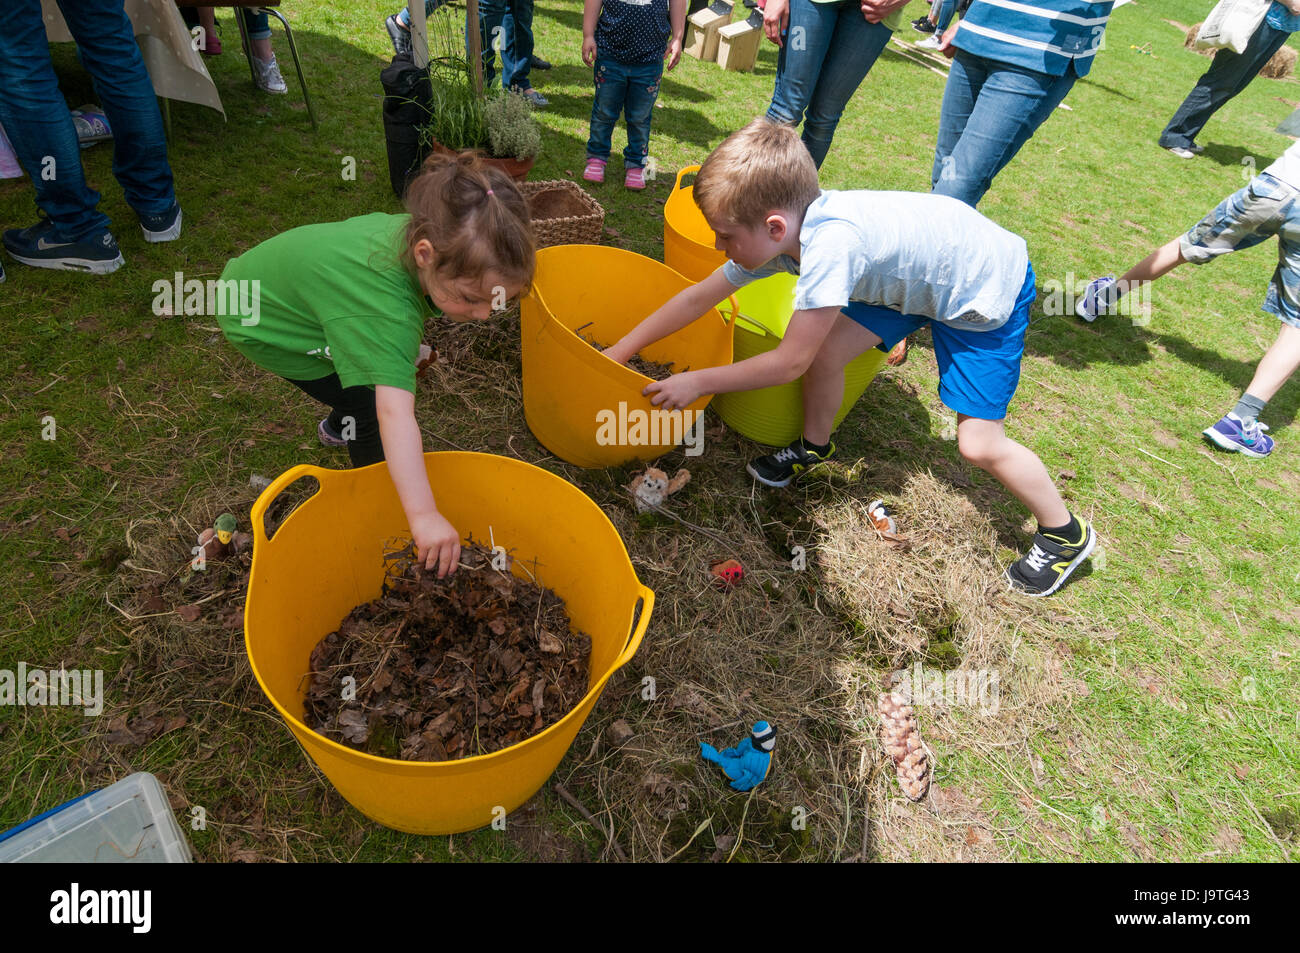 Oxford, Oxfordshire, UK. 3rd Jun 2017, Families enjoy the Oxford Festival of Nature at the Natural History Museum. - Stock Image